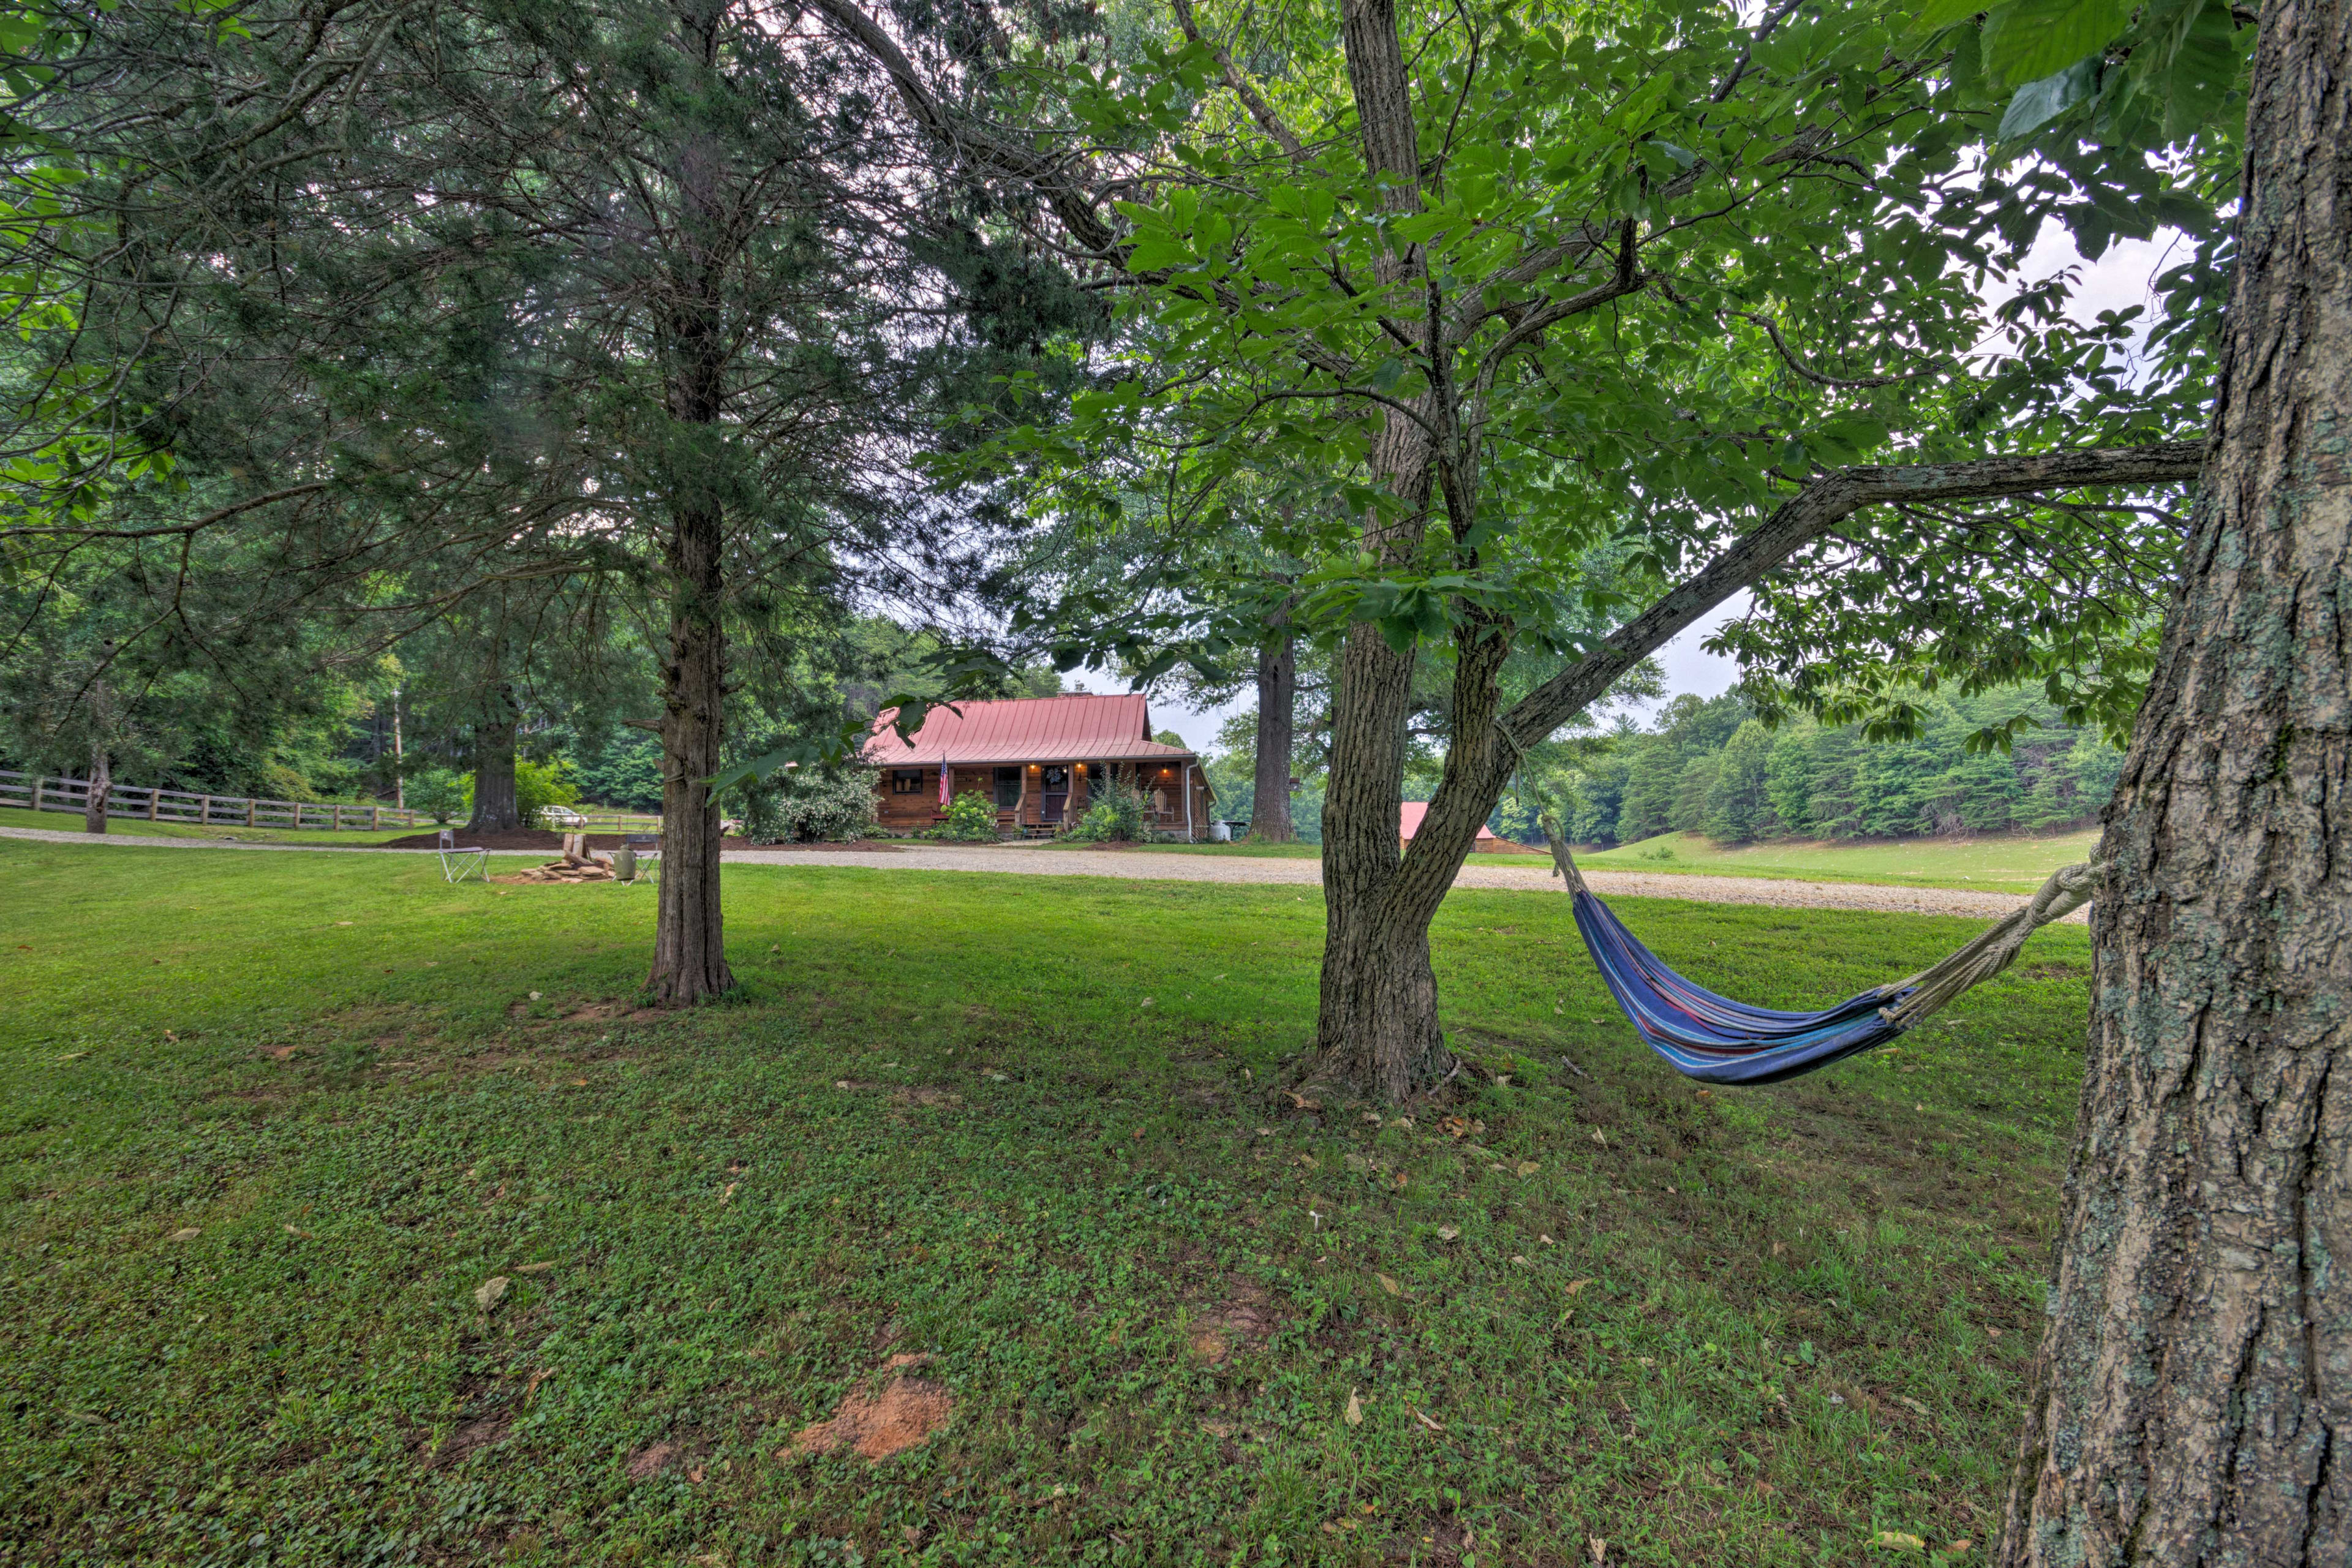 Get comfy in the hammock with a new book.